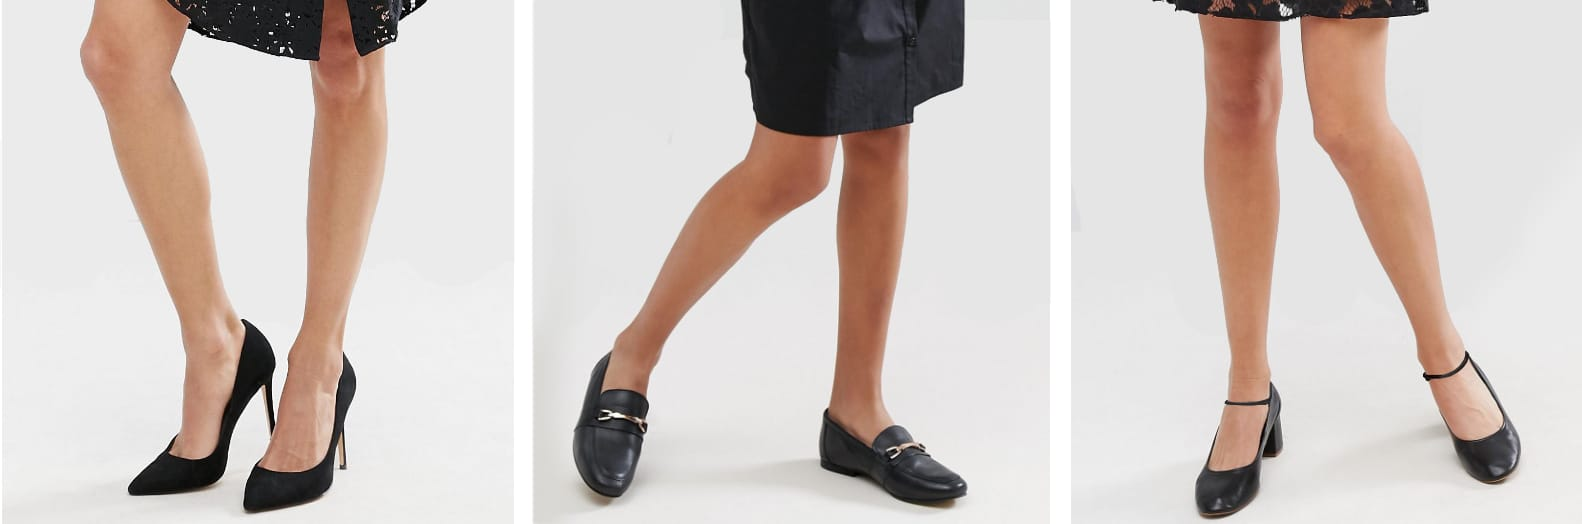 What shoes should I wear with a black dress?  Home › Blog